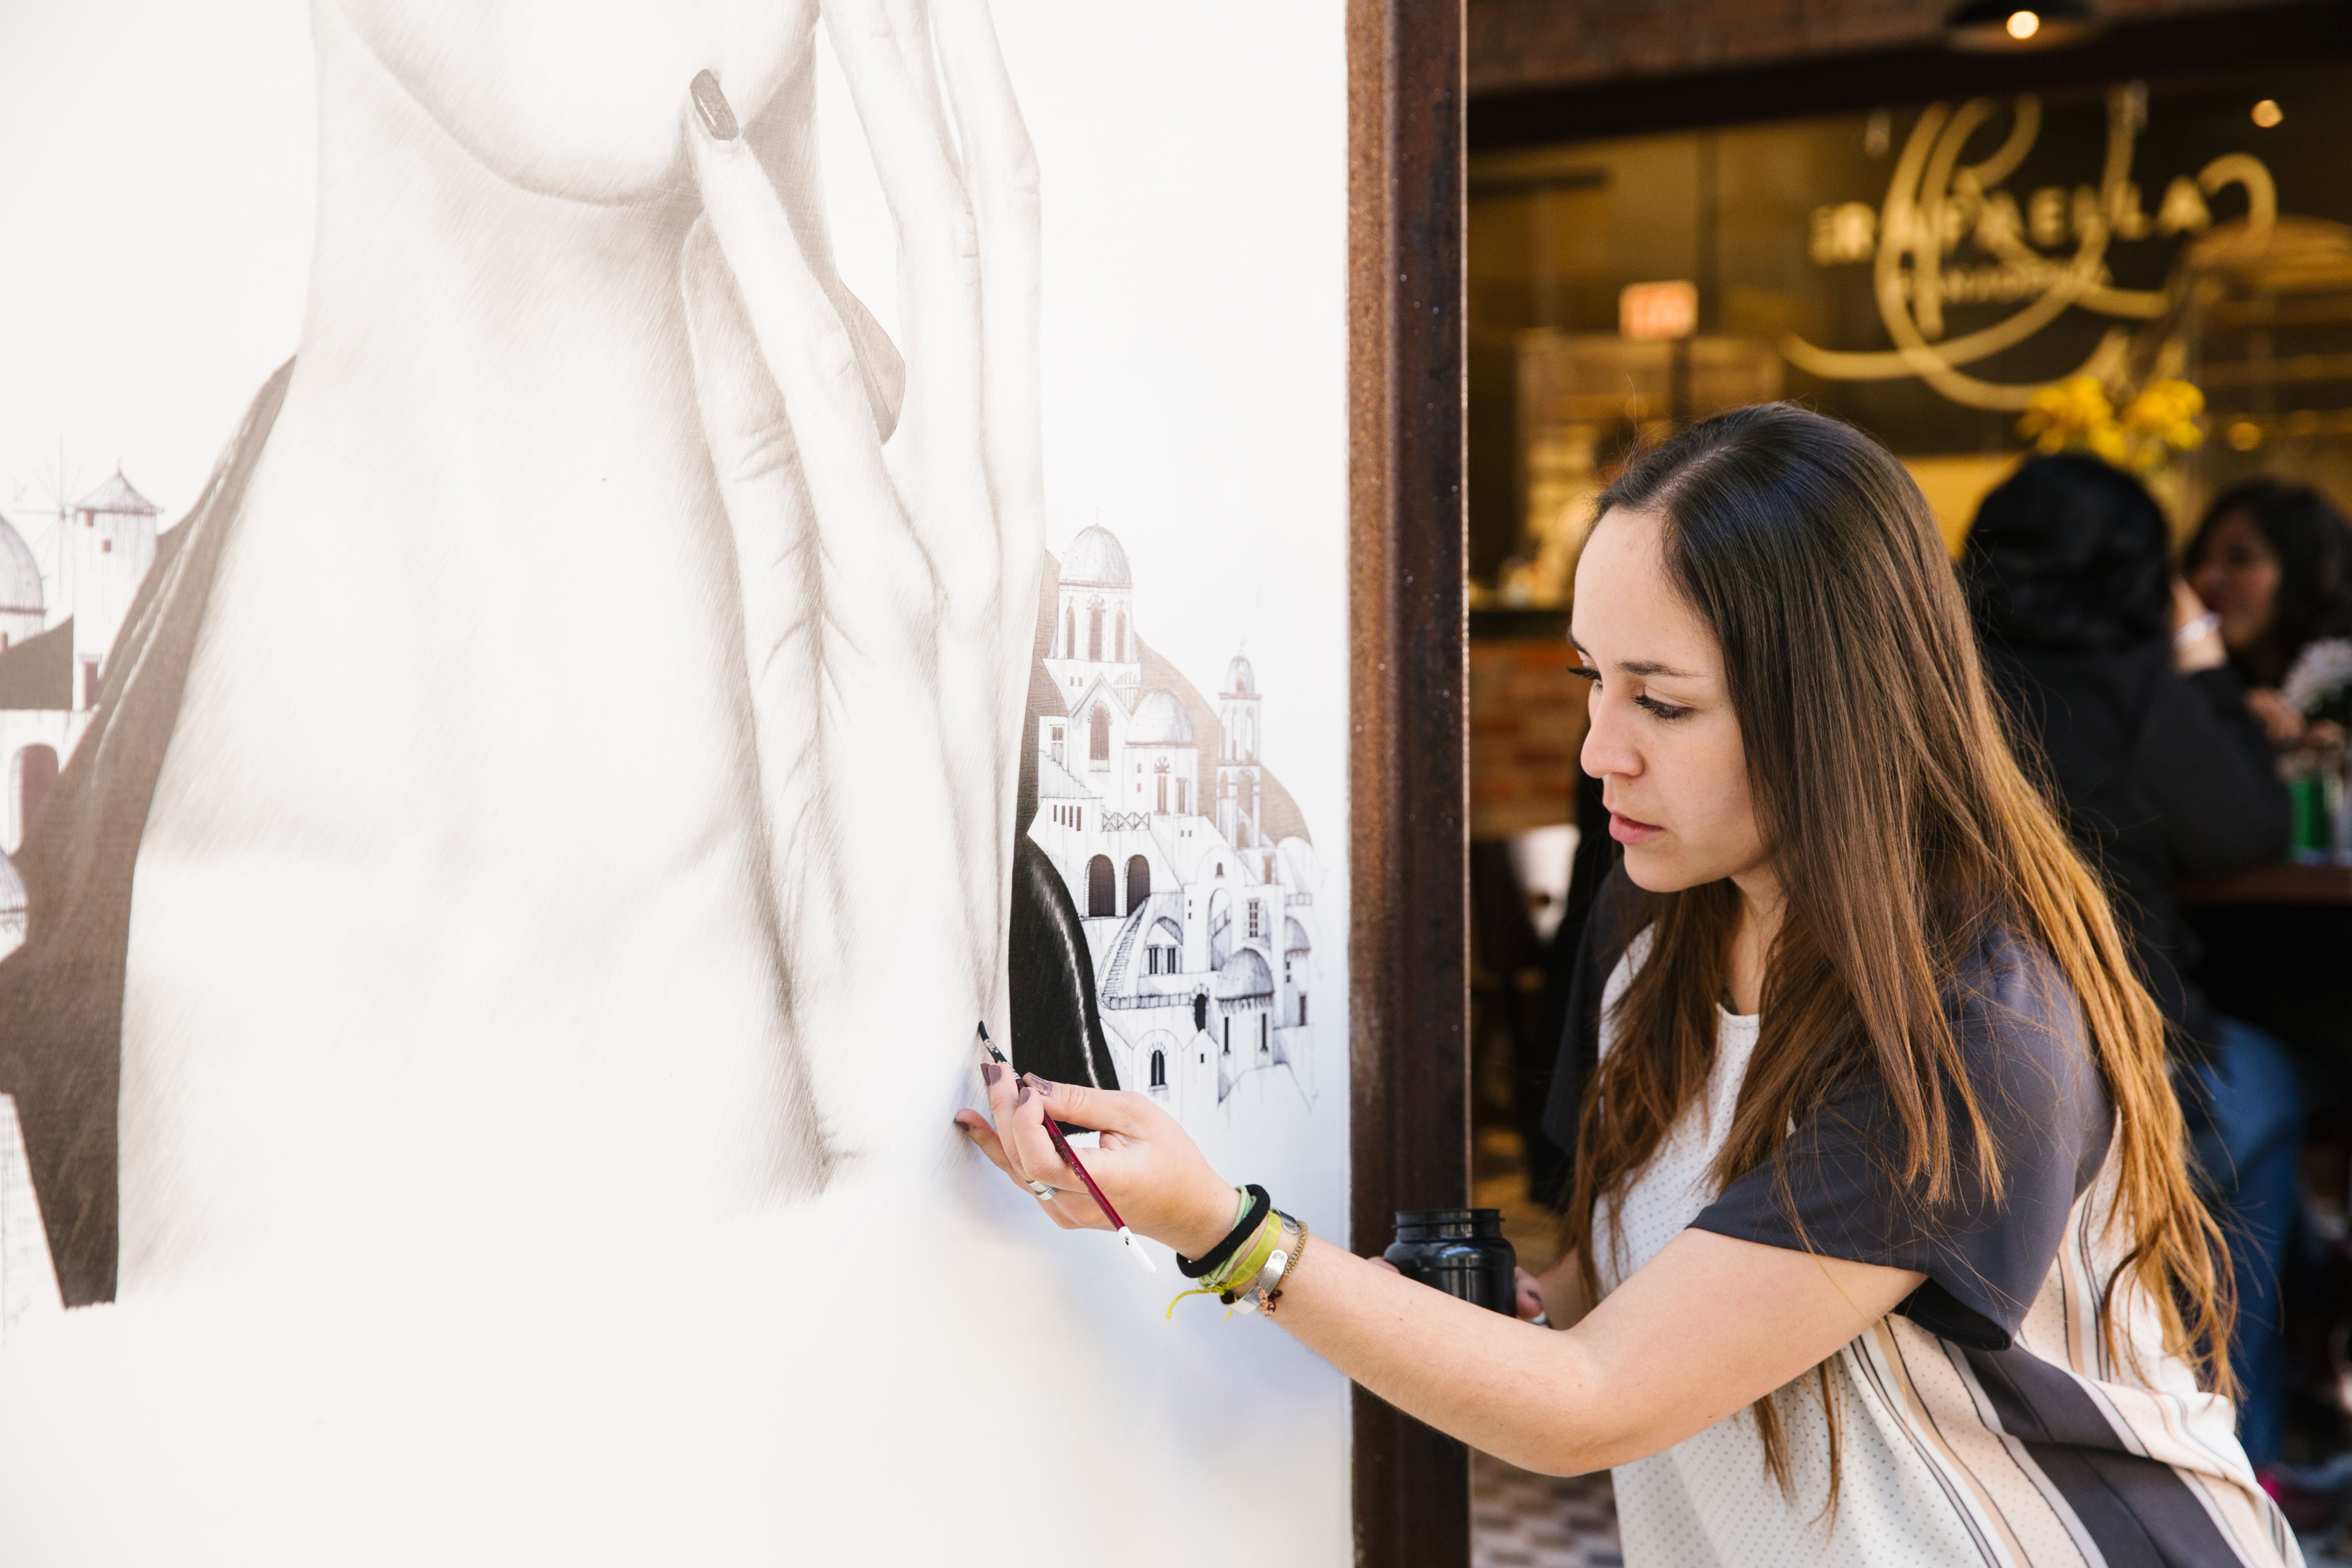 """Working outside is, says Avila, """"a very enriching experience because of the interaction between artist and public."""" Photograph: Jessica Sample"""